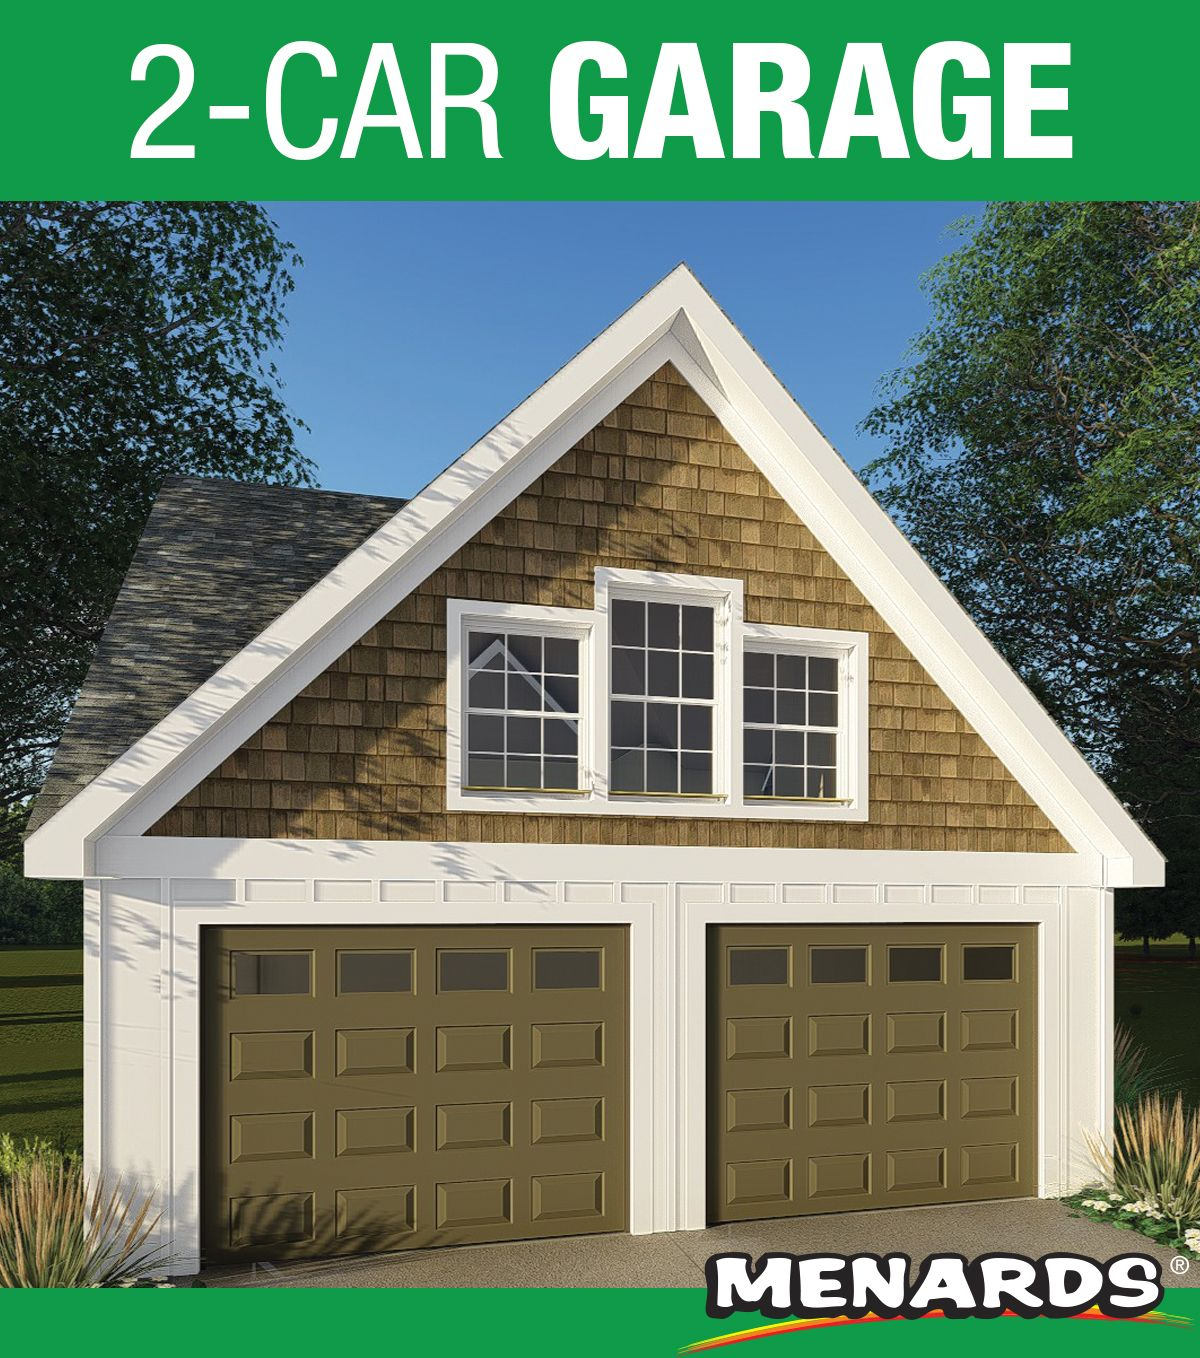 The 24 X 26 X 9 Two Car Garage With Dormer Features Two 9 X 7 Overhead Garage Doors With Openers Thr Craftsman Bungalows Entry Doors Overhead Garage Door